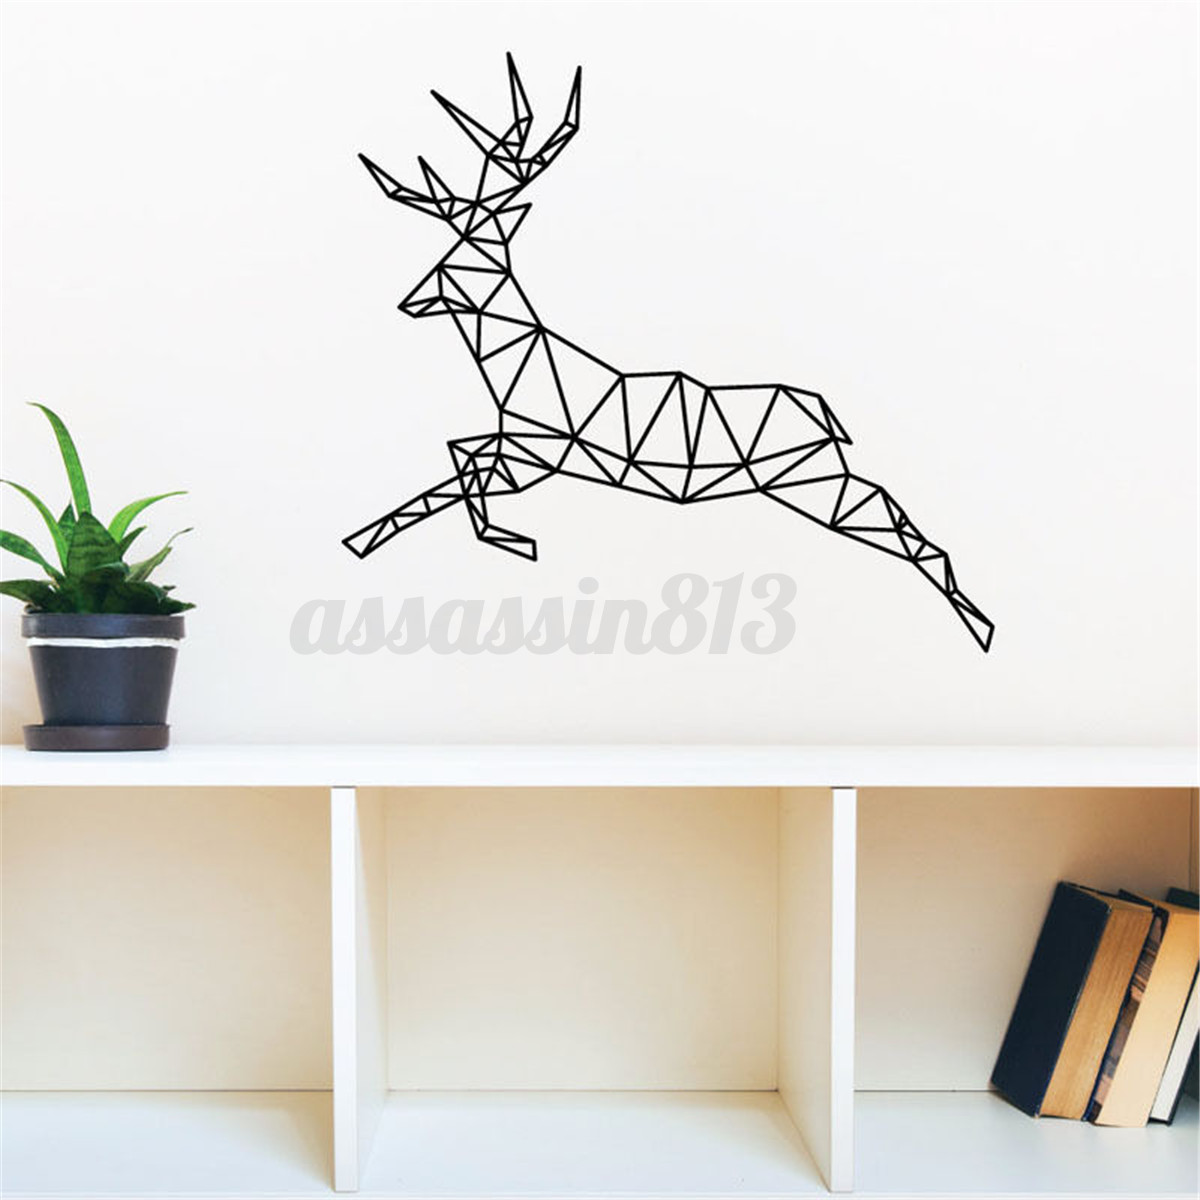 Living room decor removable decals mural art pvc diy home for Wall decals for home